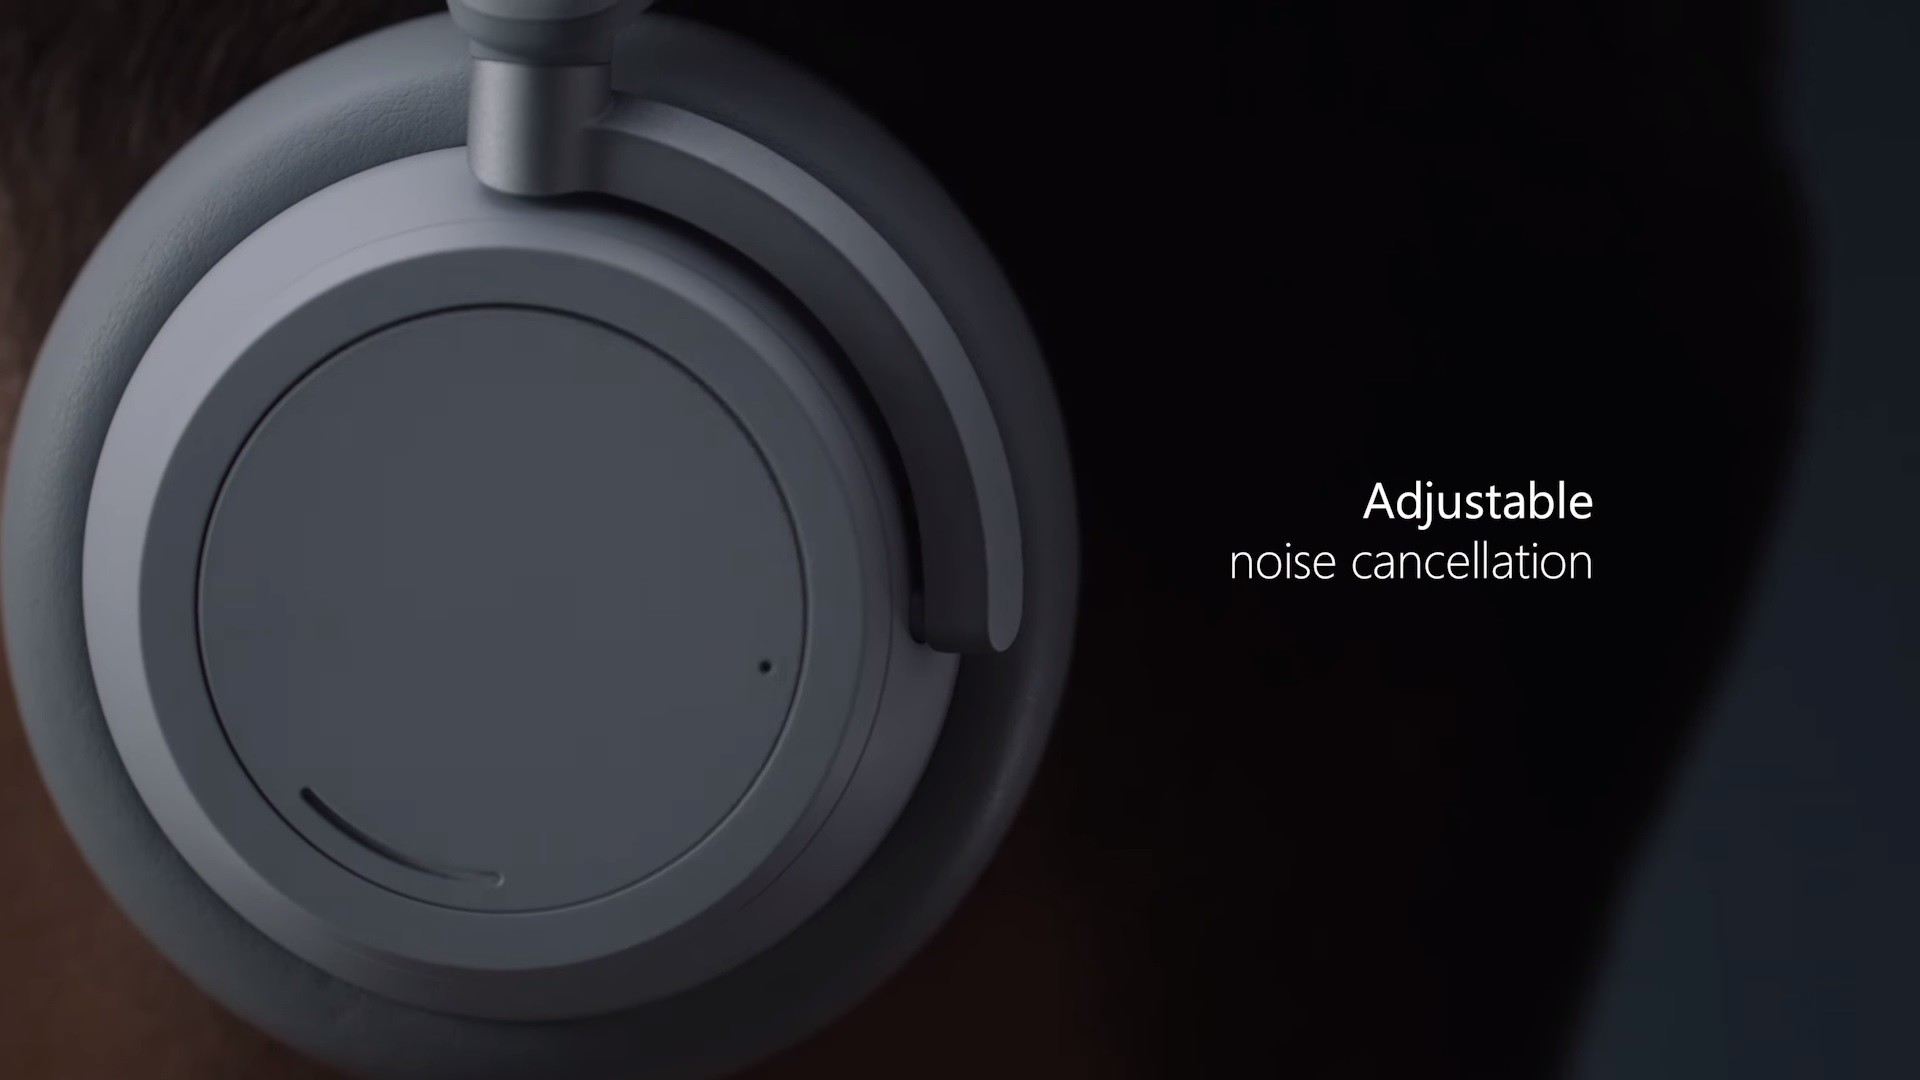 b6defc23f34 ... Microsoft has announced today the upcoming availability of the  Cortana-powered noise-canceling headphones in eight new markets beginning  in March.